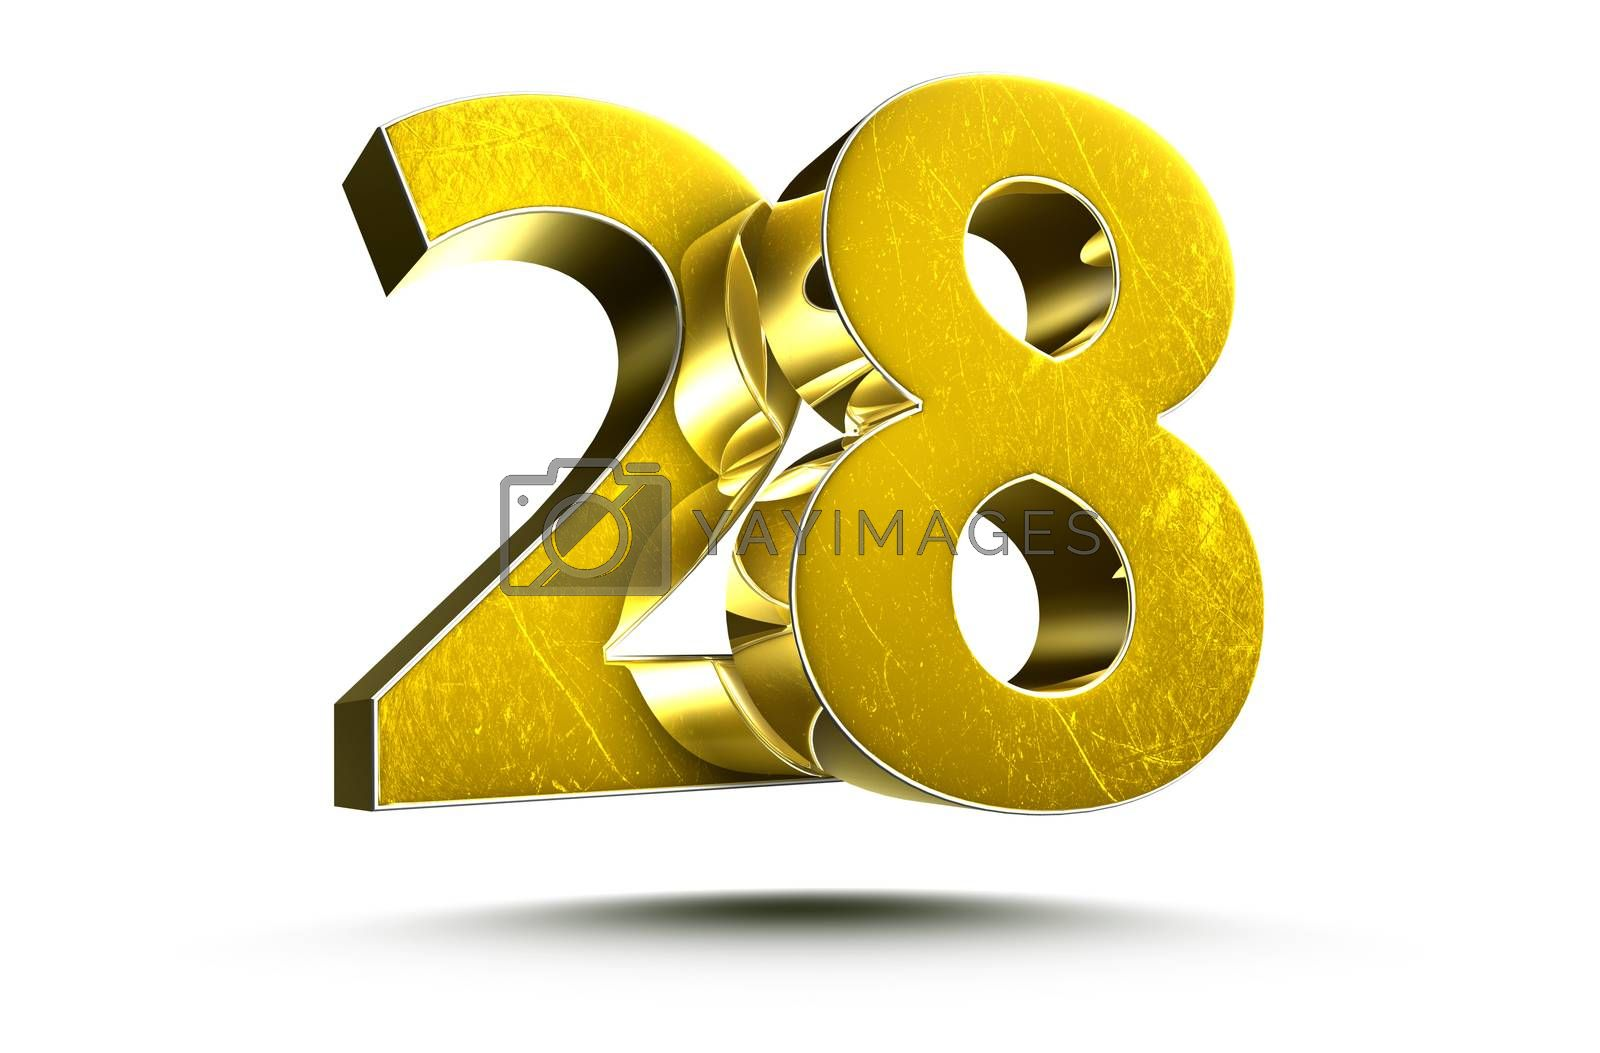 3D illustration Golden number 28 isolated on a white background.(with Clipping Path).